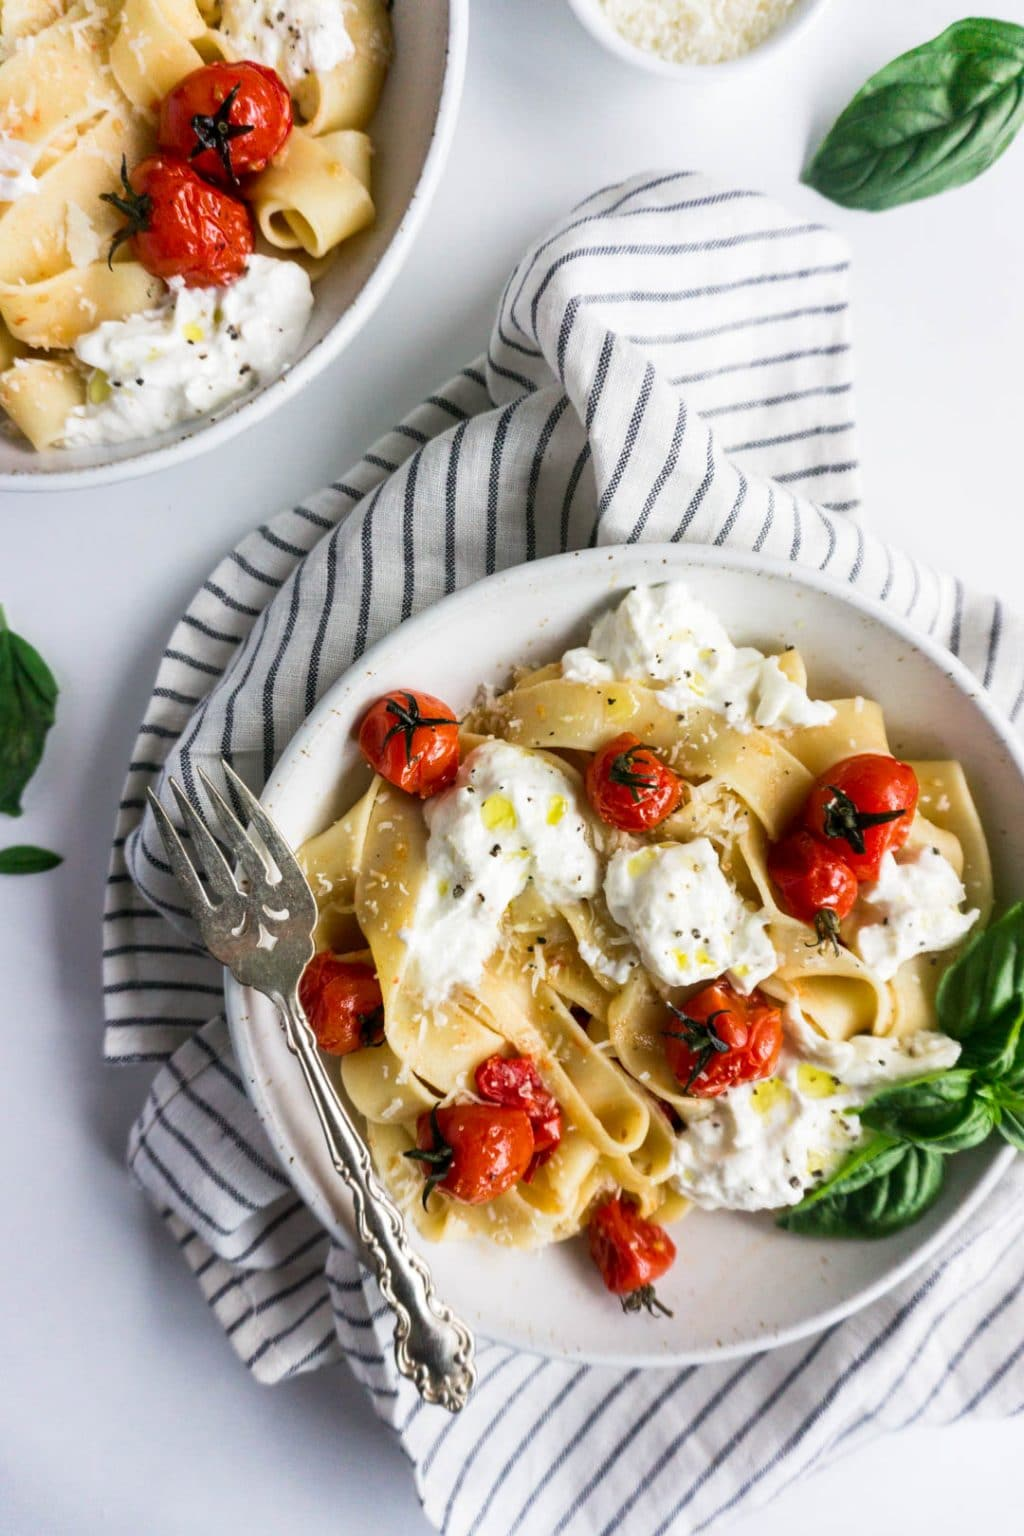 Burst cherry tomato pasta with burrata in a plate garnished with fresh basil